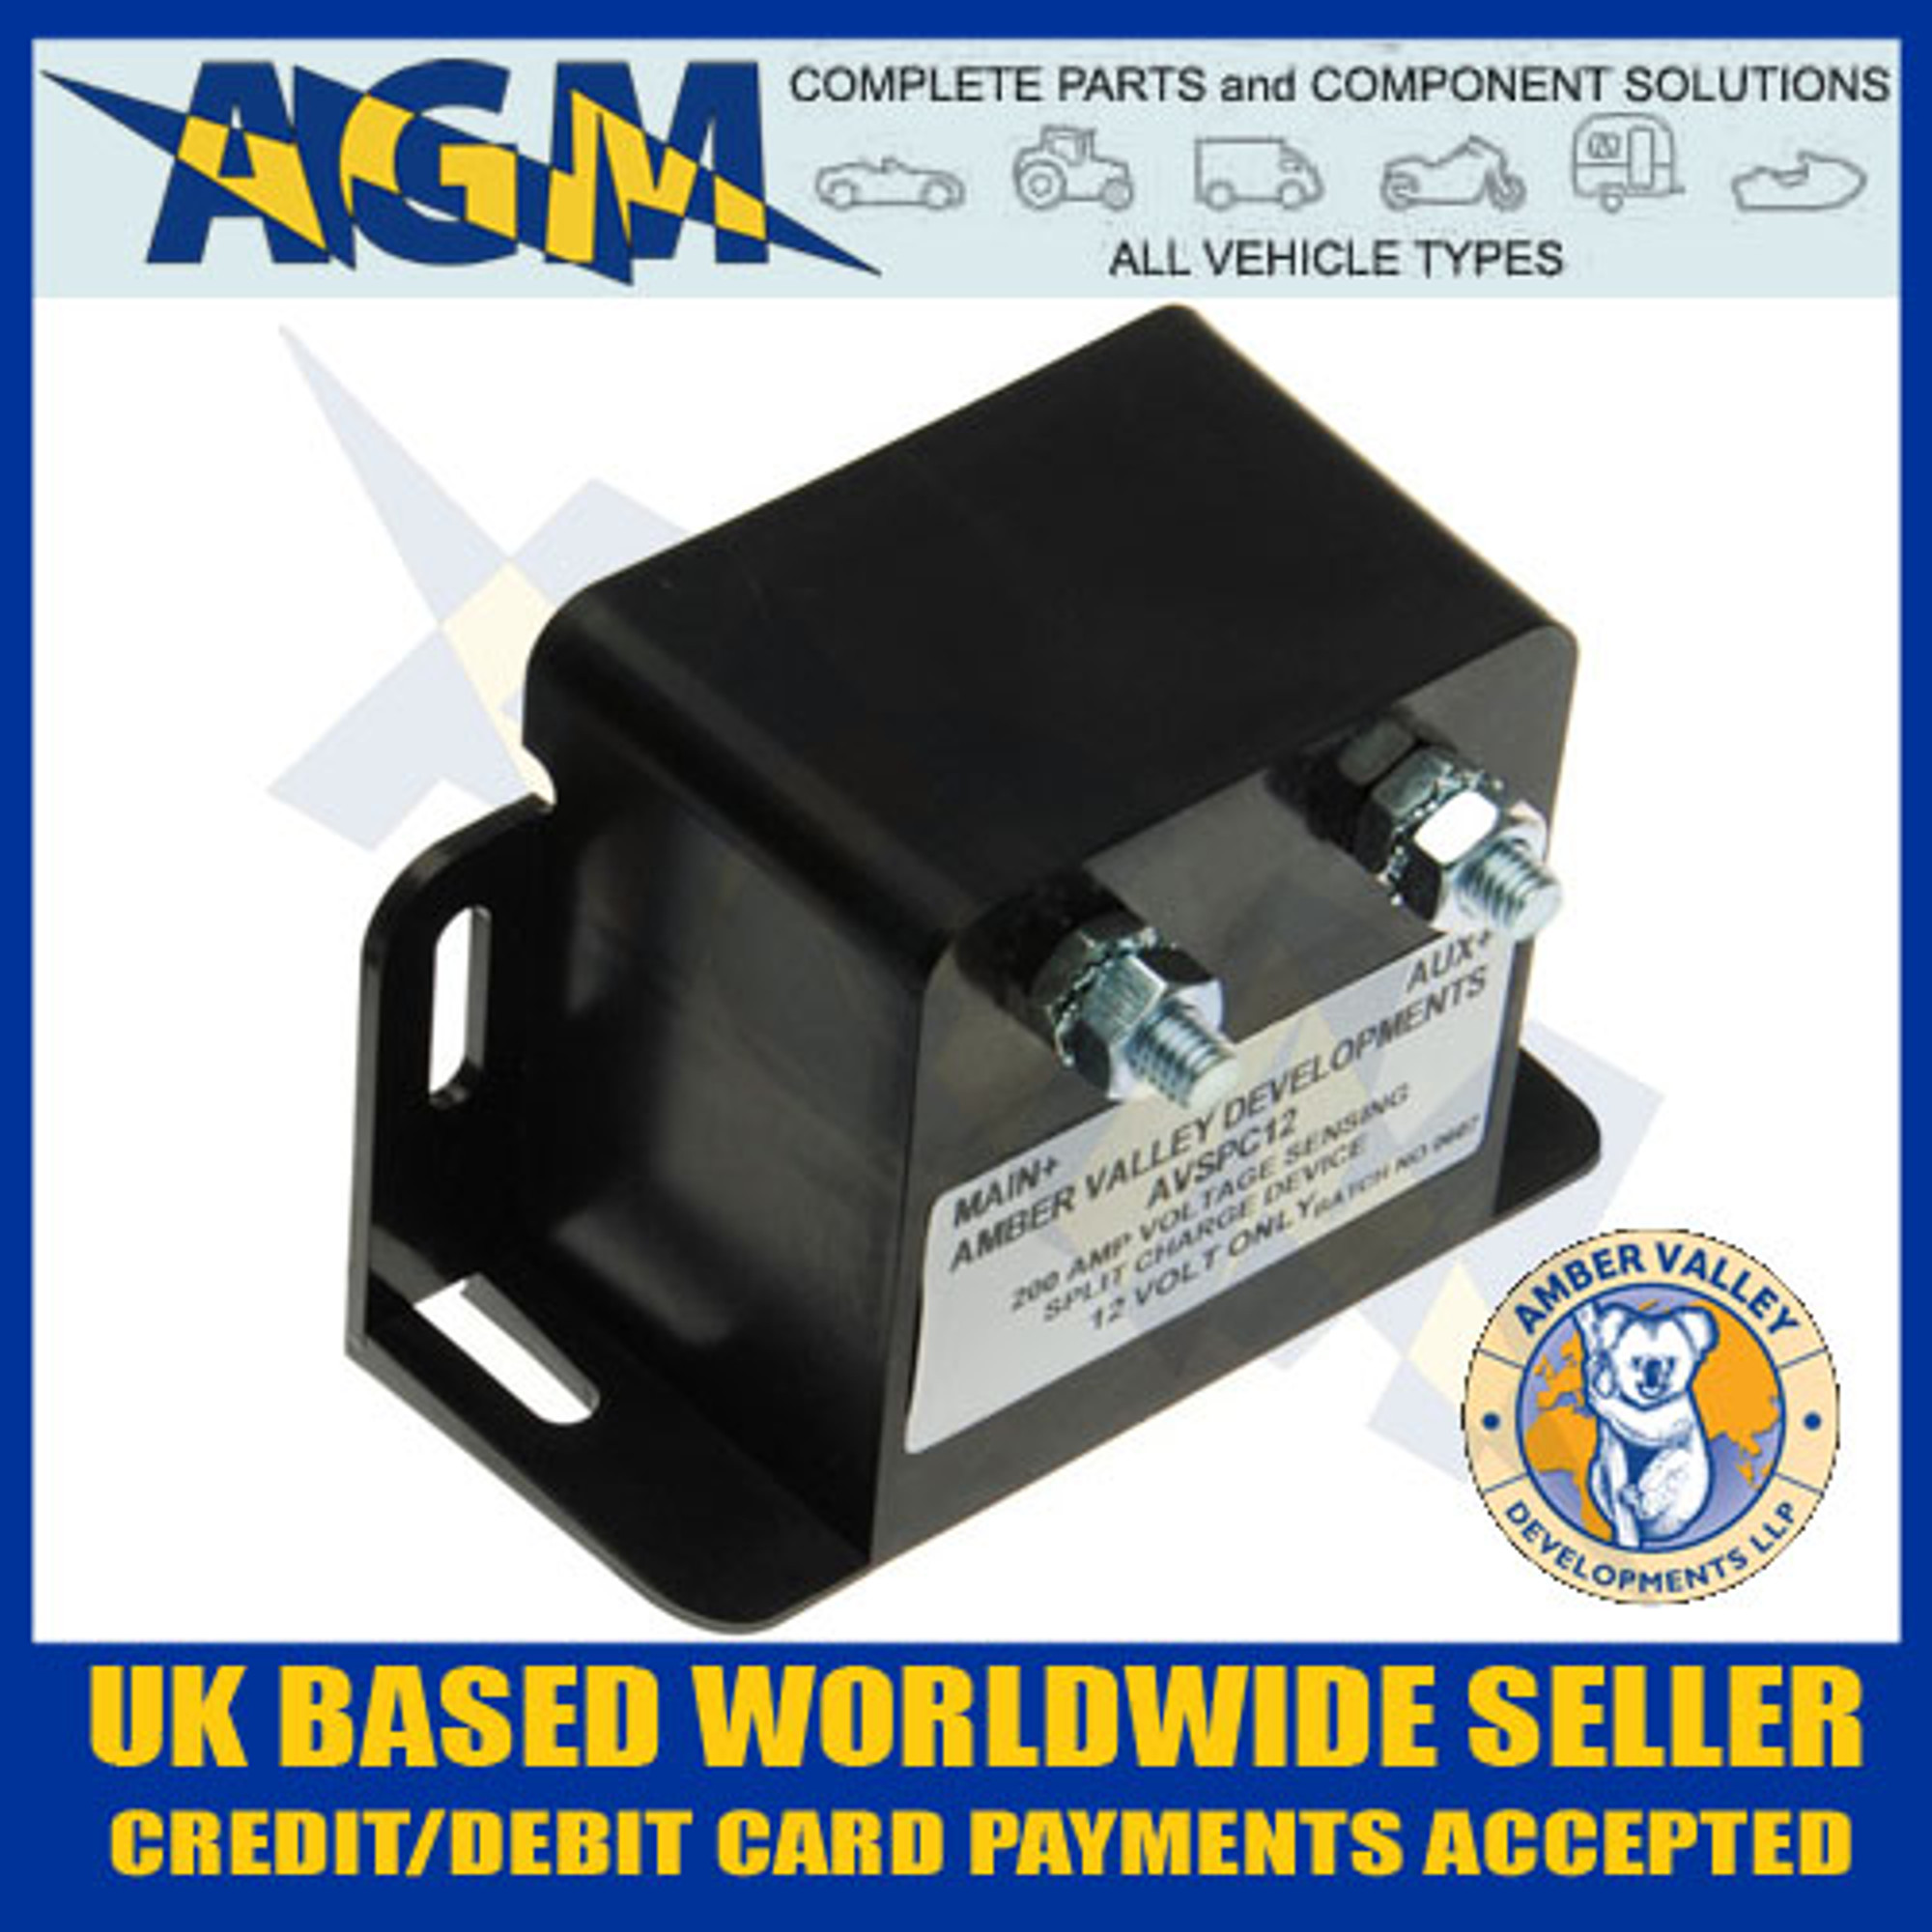 Amber valley avspc12 12v 200a intelligent split charge voltage amber valley avspc12 12v 200a intelligent split charge asfbconference2016 Gallery